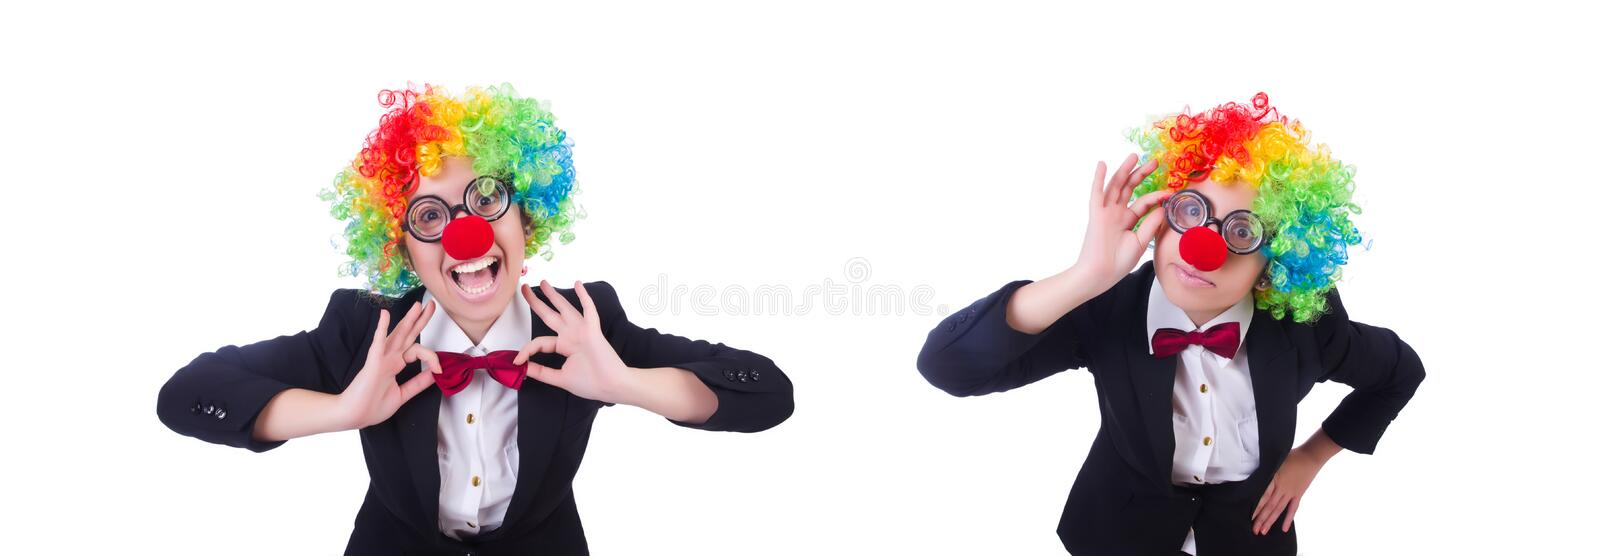 Woman clown businesswoman isolated on white royalty free stock images